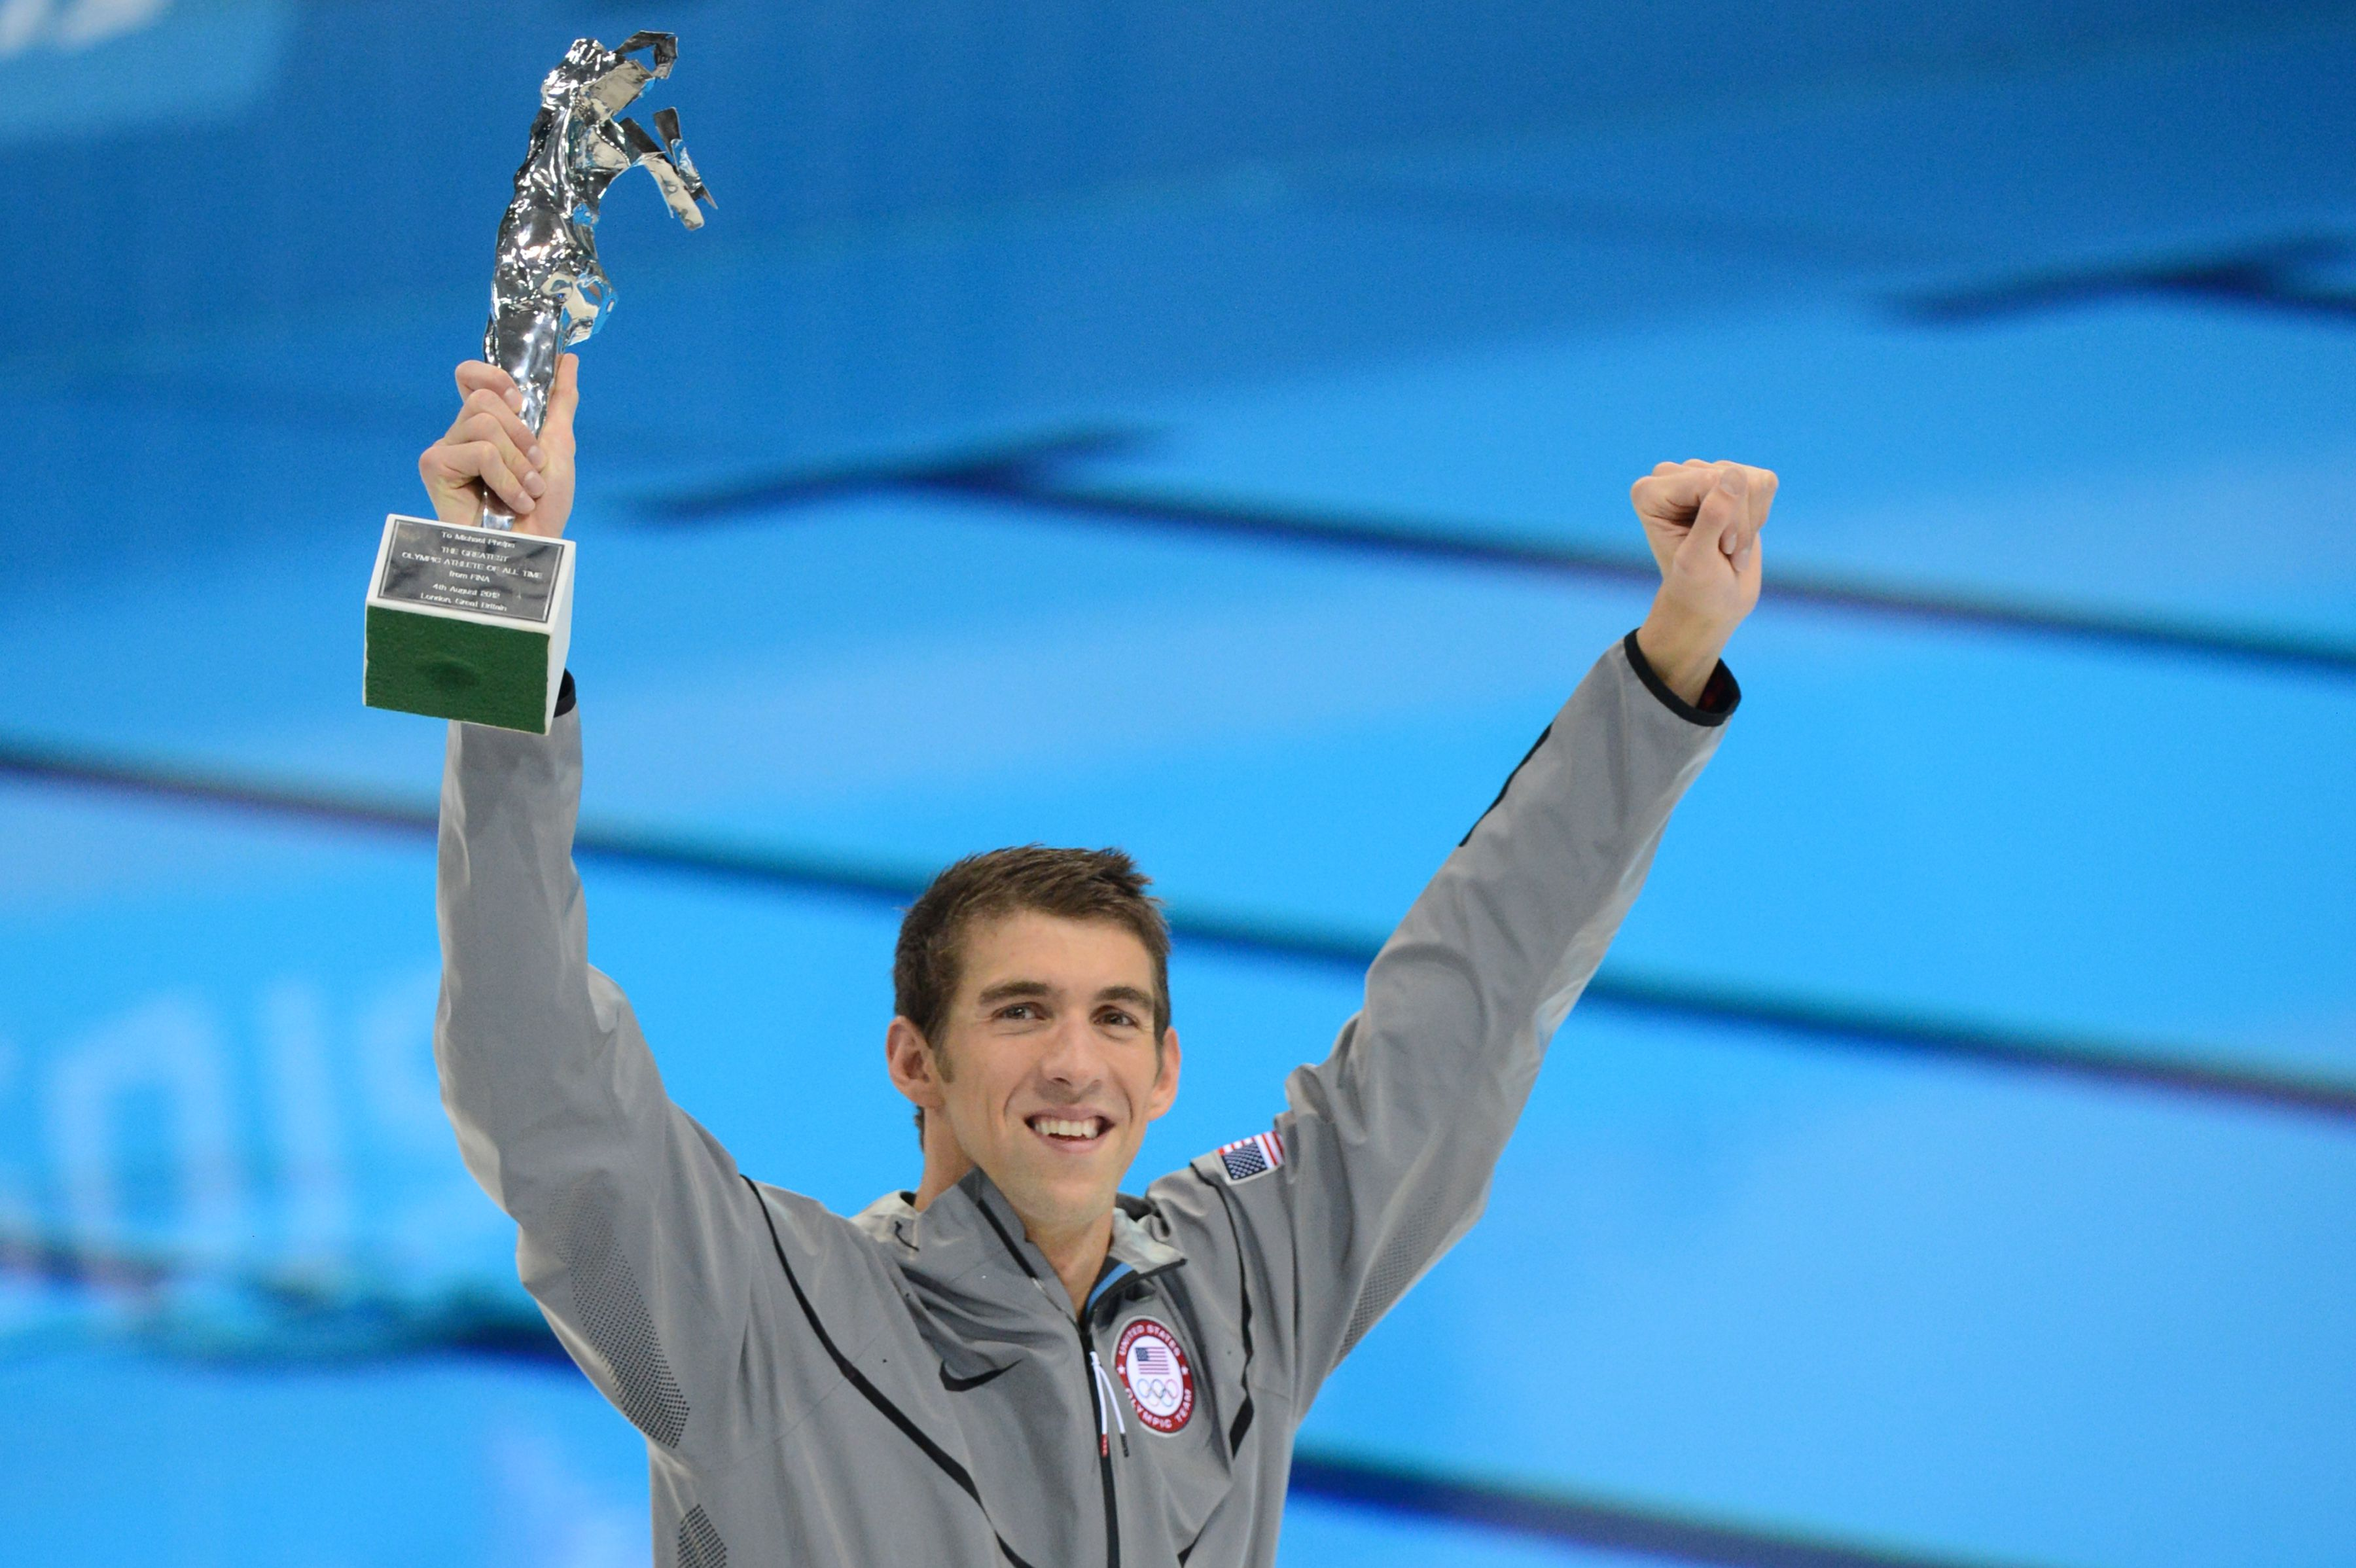 Michael Phelps holds up trophy